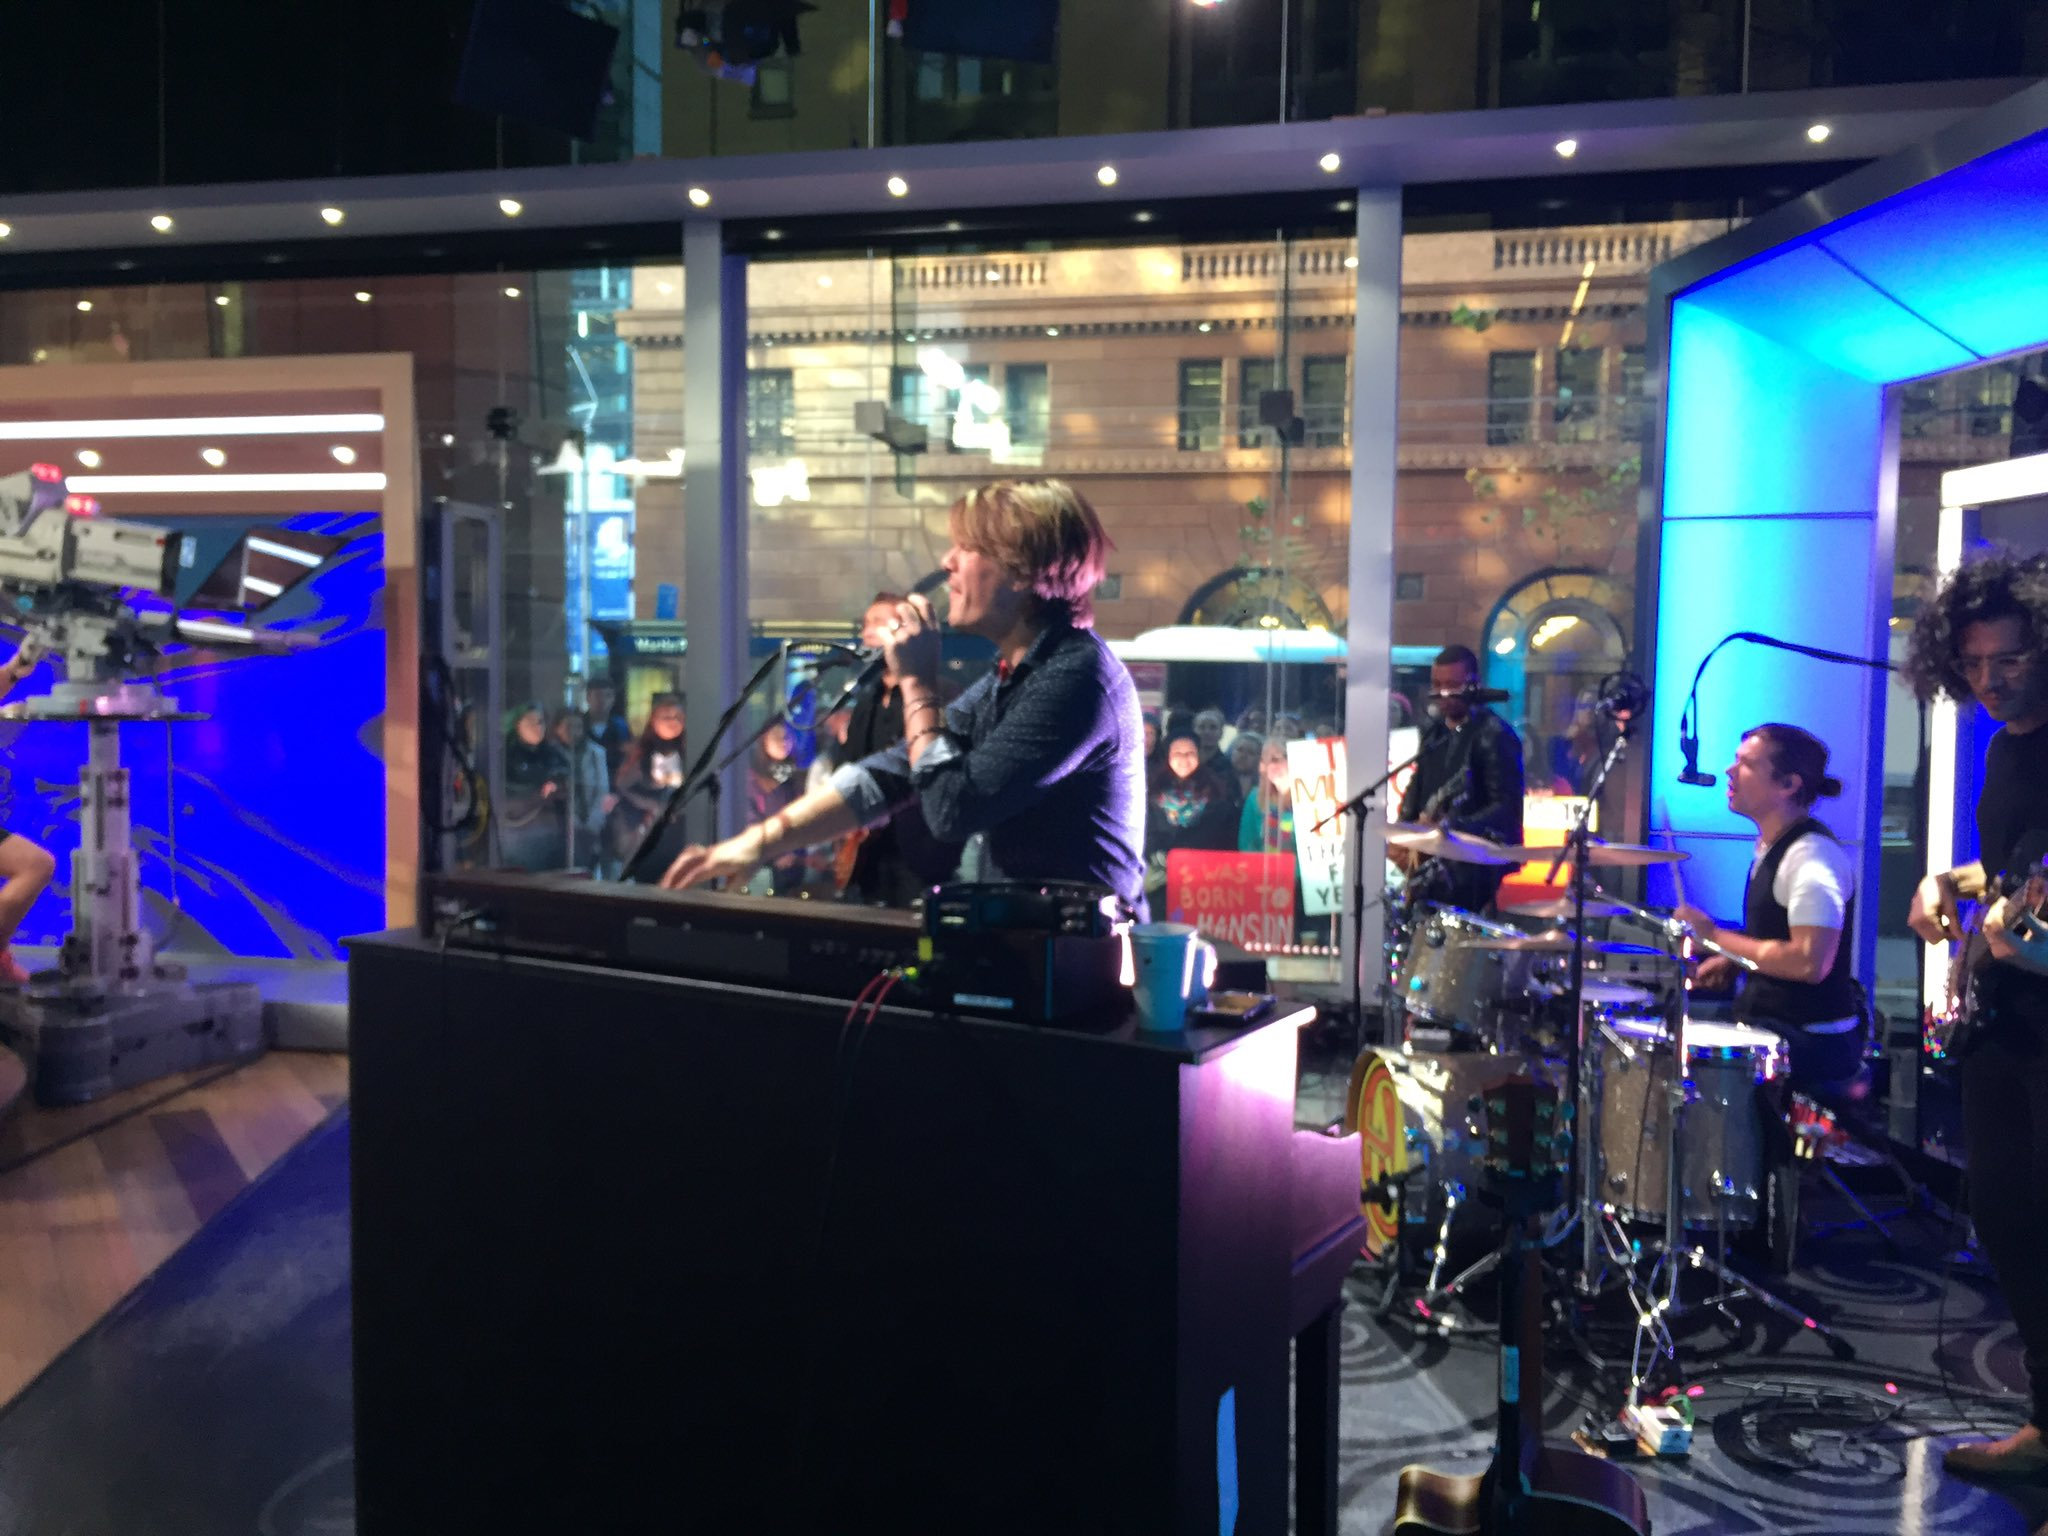 Live on @sunriseon7 - stay tuned to hear more music. https://t.co/sWRP07sKBQ